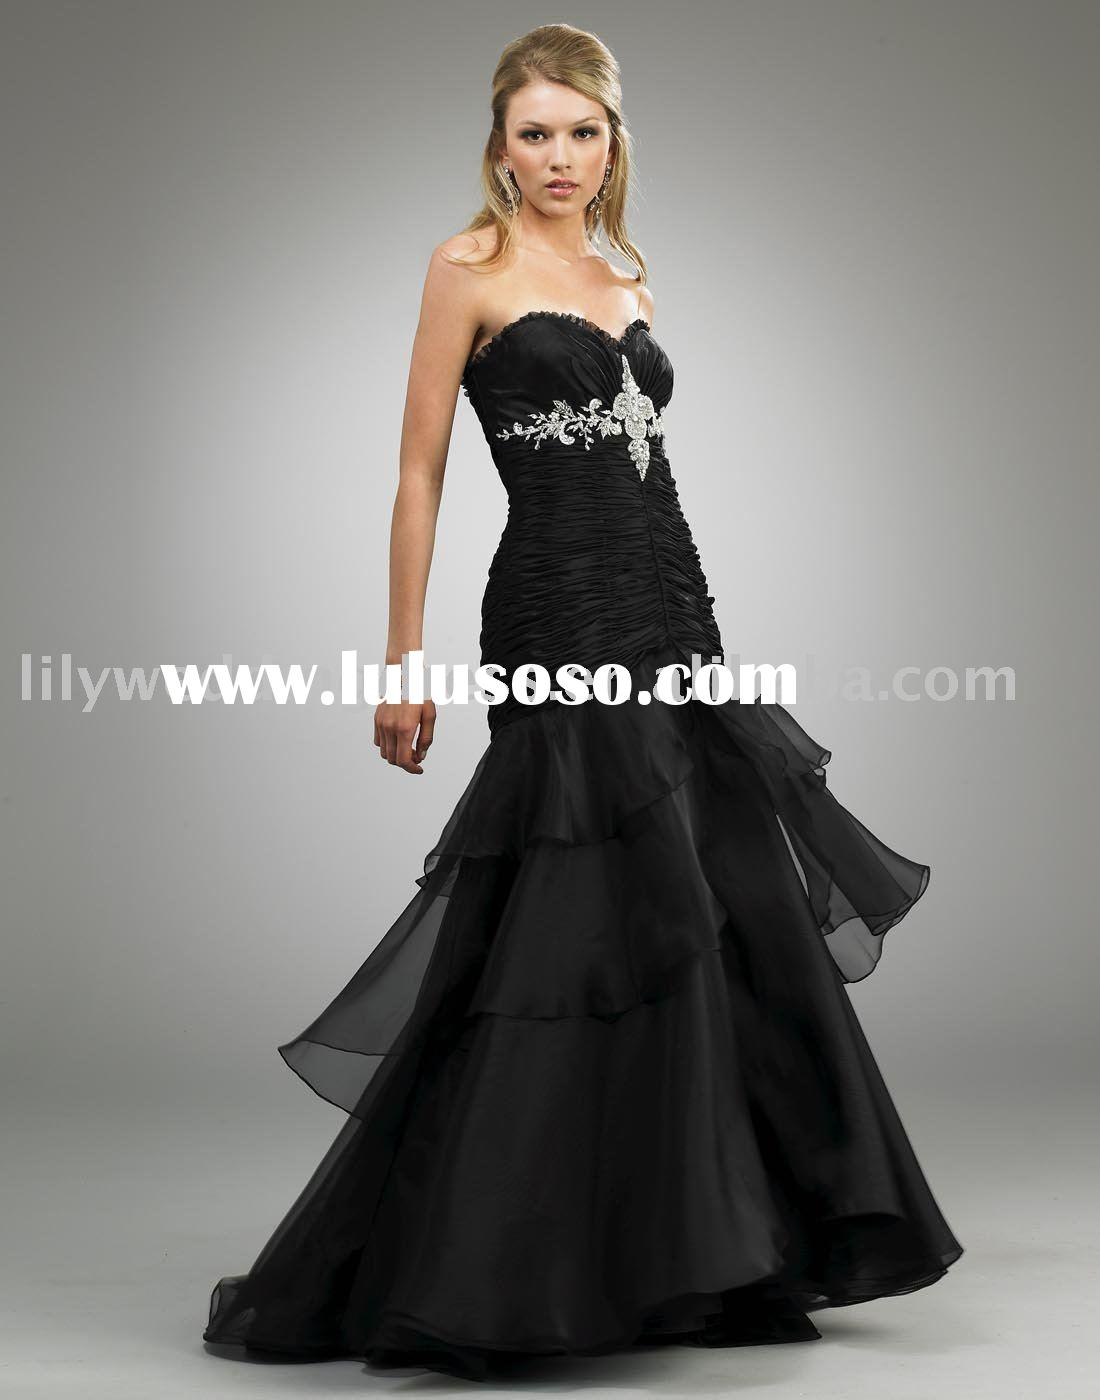 Stunning Prom Dress Ball Gown